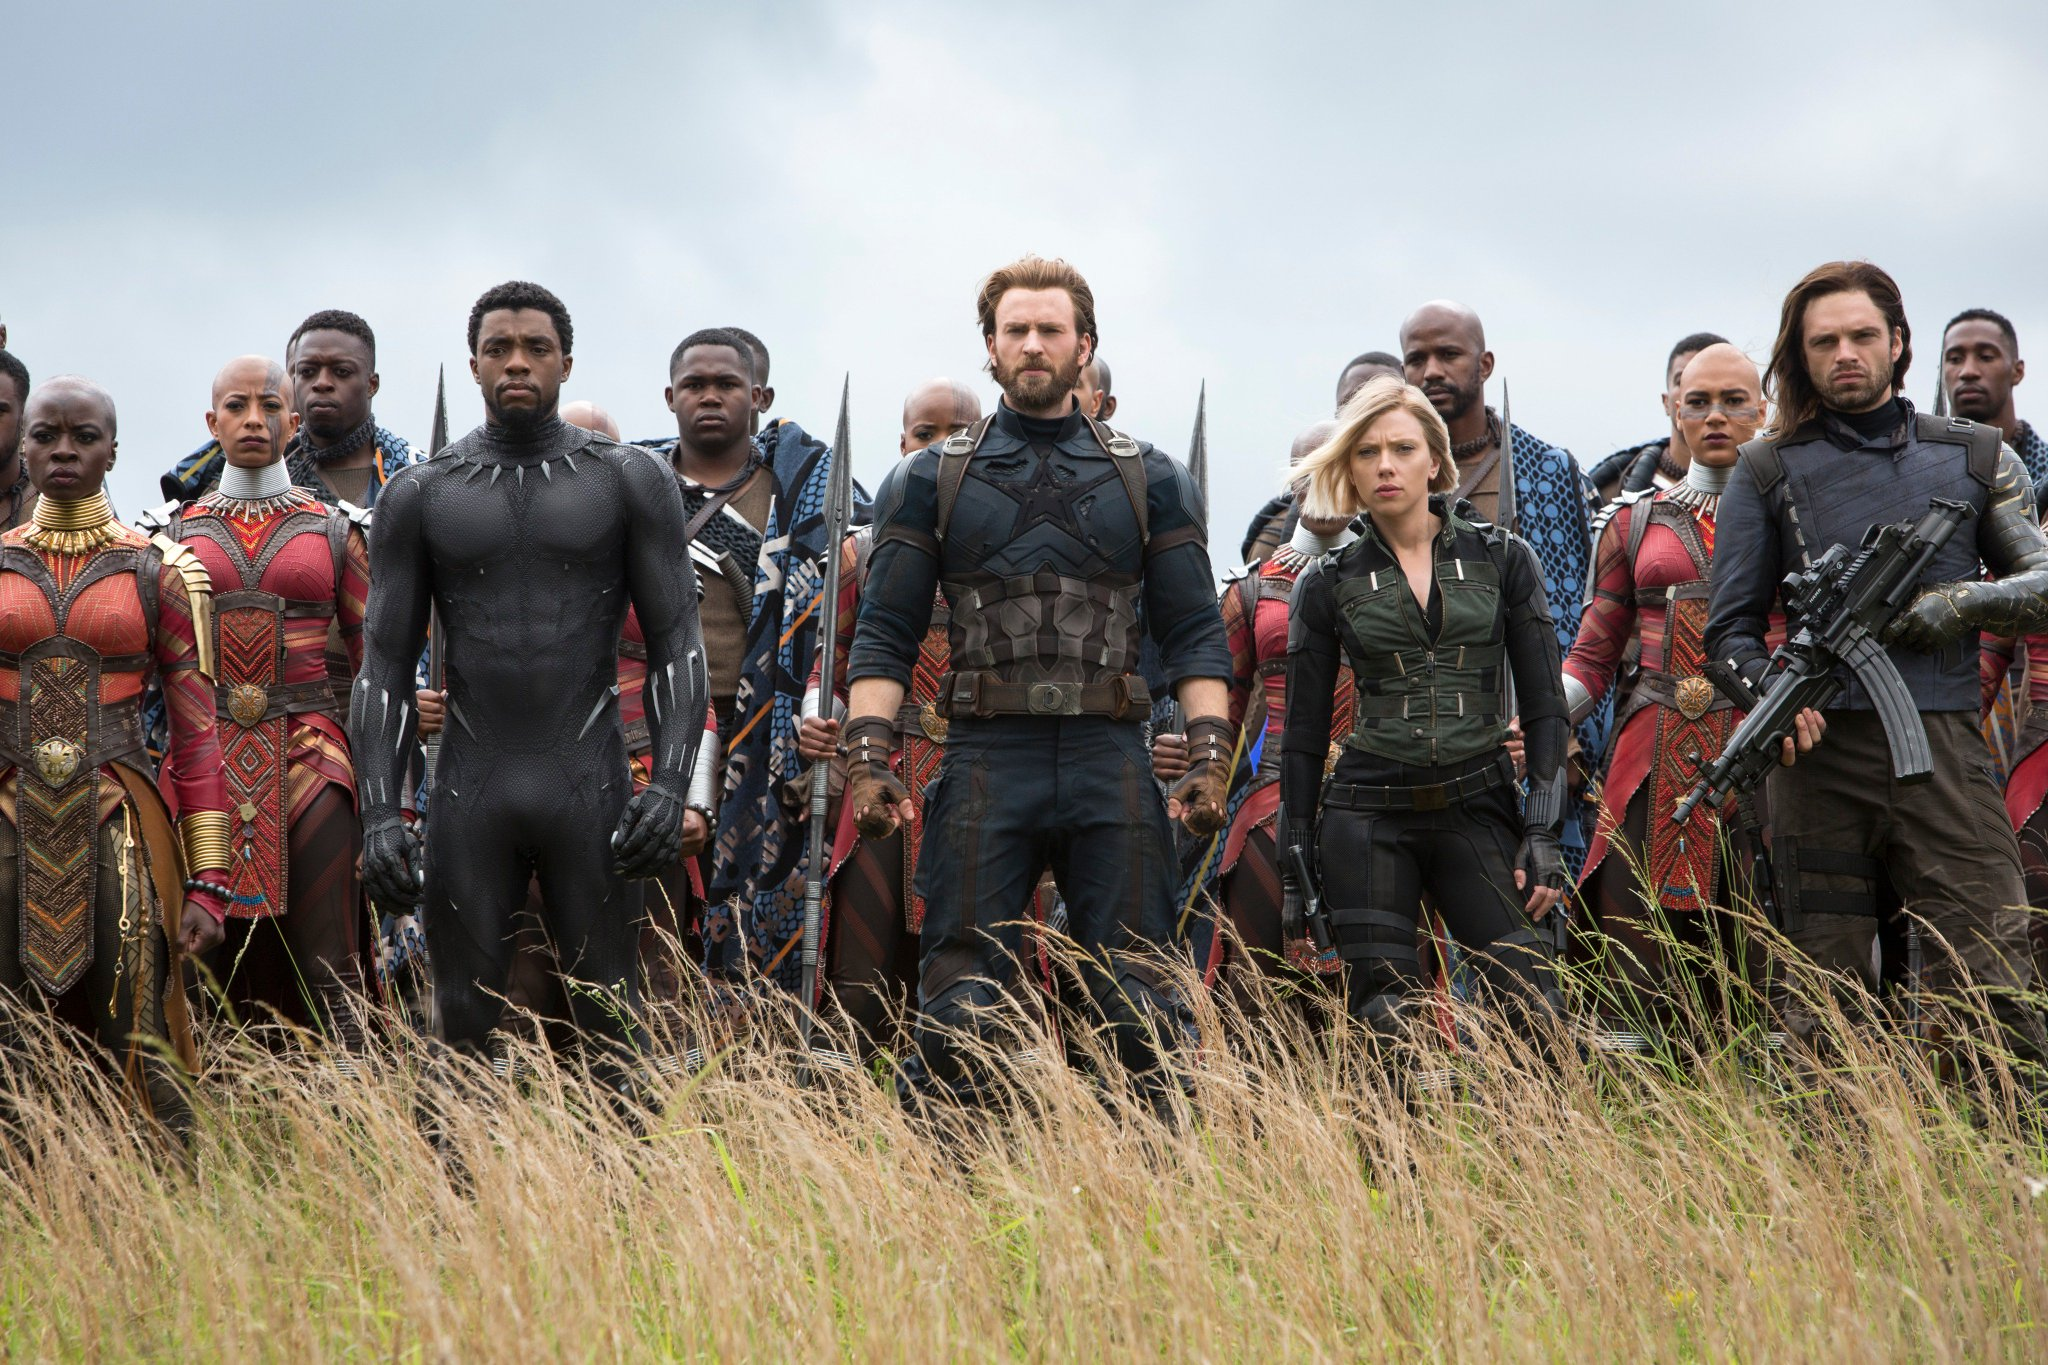 Check out these new images from #Avengers: #InfinityWar. Destiny arrives April 27th. (1/3) https://t.co/VMx2vkkgw1